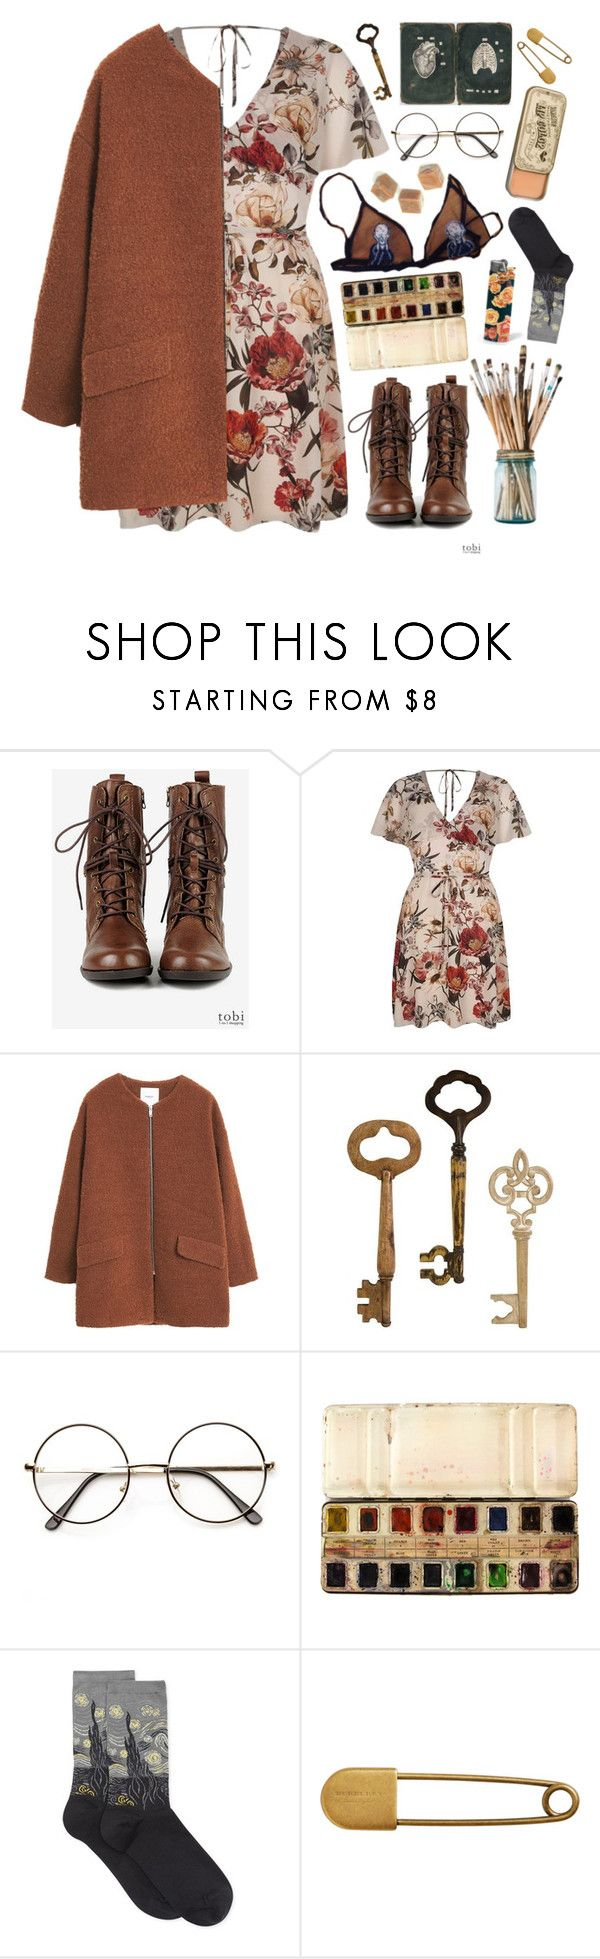 """""""An art misunderstood"""" by xxayshaxx ❤ liked on Polyvore featuring Seychelles, River Island, MANGO, Home Decorators Collection, GHETTO FAB, HOT SOX and Burberry"""